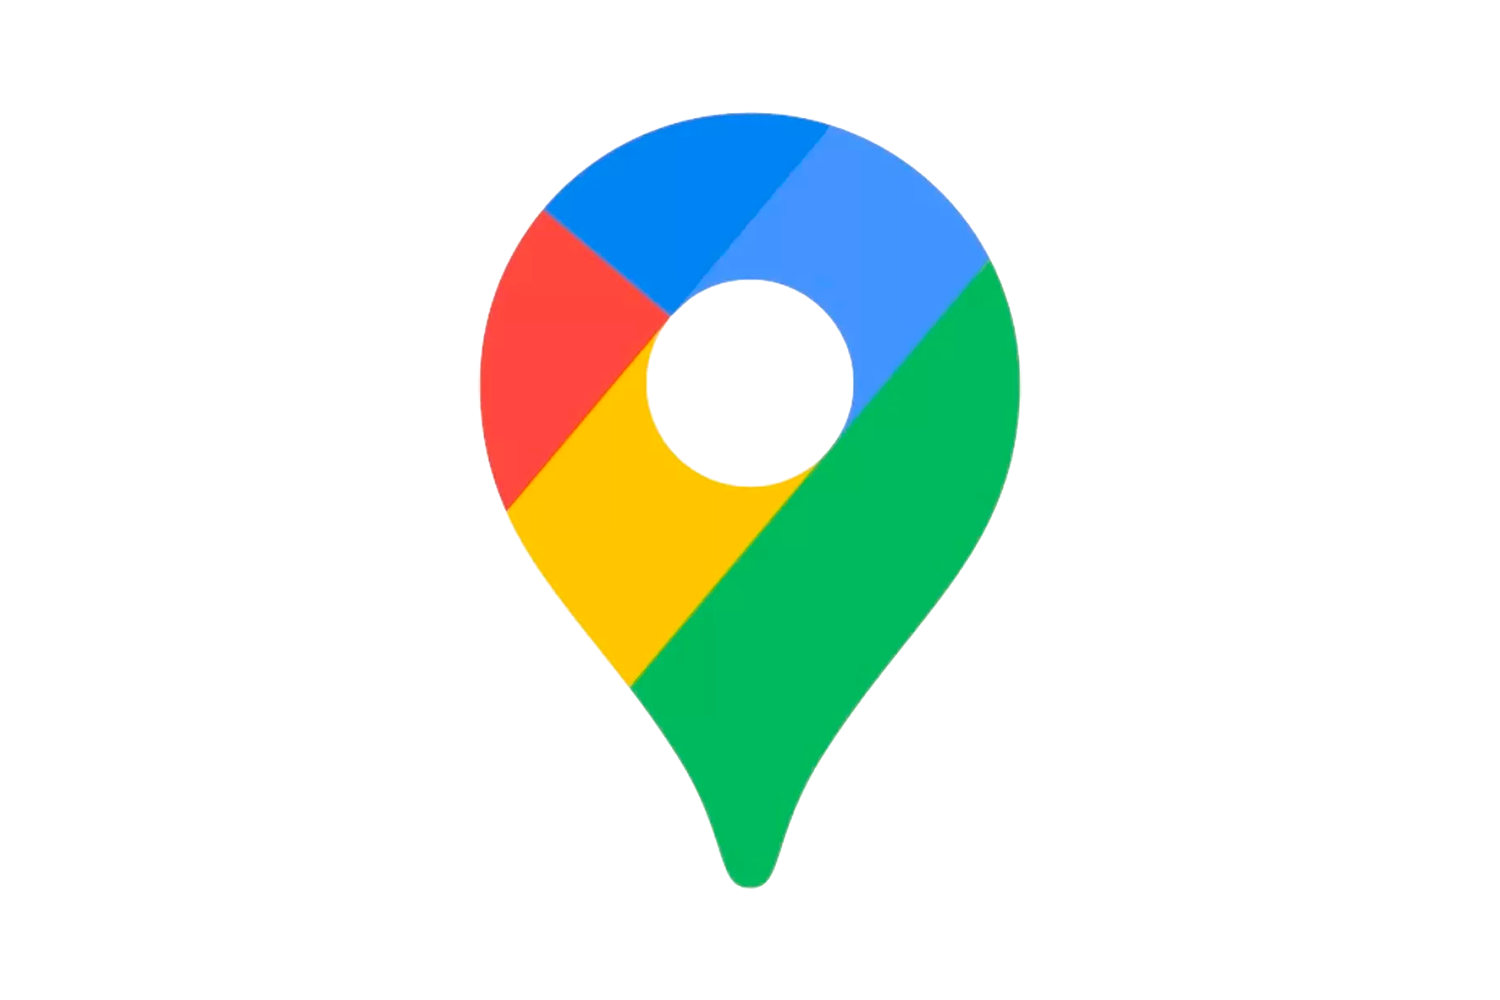 Google Maps Downloads Rise for the Third Week in a Row